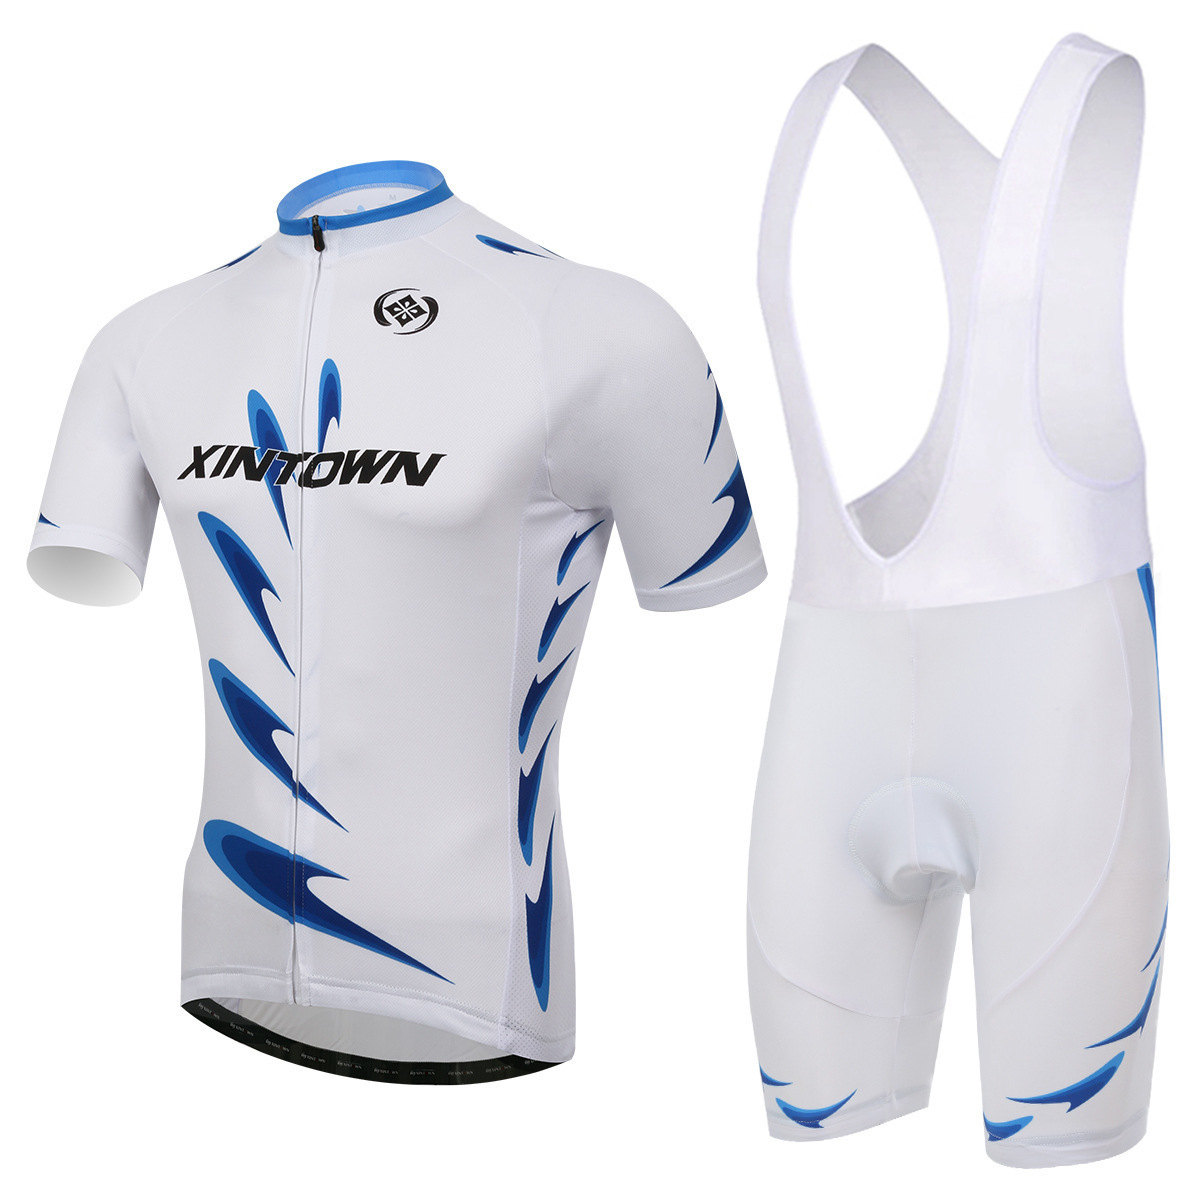 XINTOWN Outdoor Sport Cycling Jersey Set 2018 MTB Sets Bike Clothing Bicycle Wear Women Cycling Short Sleeve Bib Jersey Sets 2015 fdj cycling jersey quick dry cycling sets short sleeve jersey and 3d gel bib short with sleeve breathable bicycle wear